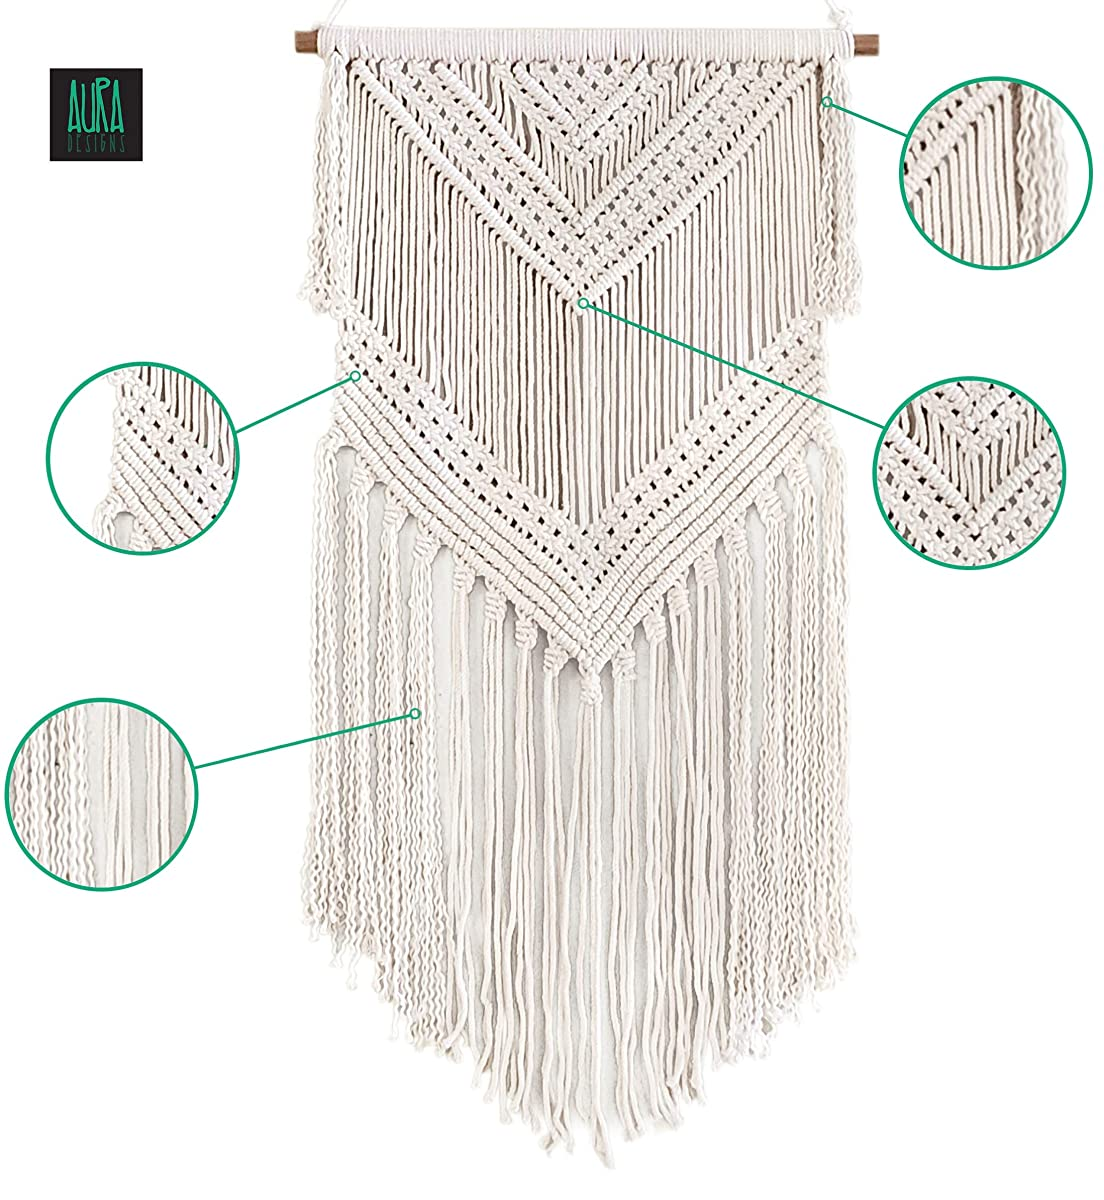 "Boho Macrame Woven Wall Hanging – 16"" x 36"" Modern Bohemian Wall Art Tapestry Decor for House, Apartment, Dorm Room, Nursery, Party Decorations, Wedding Backdrop"